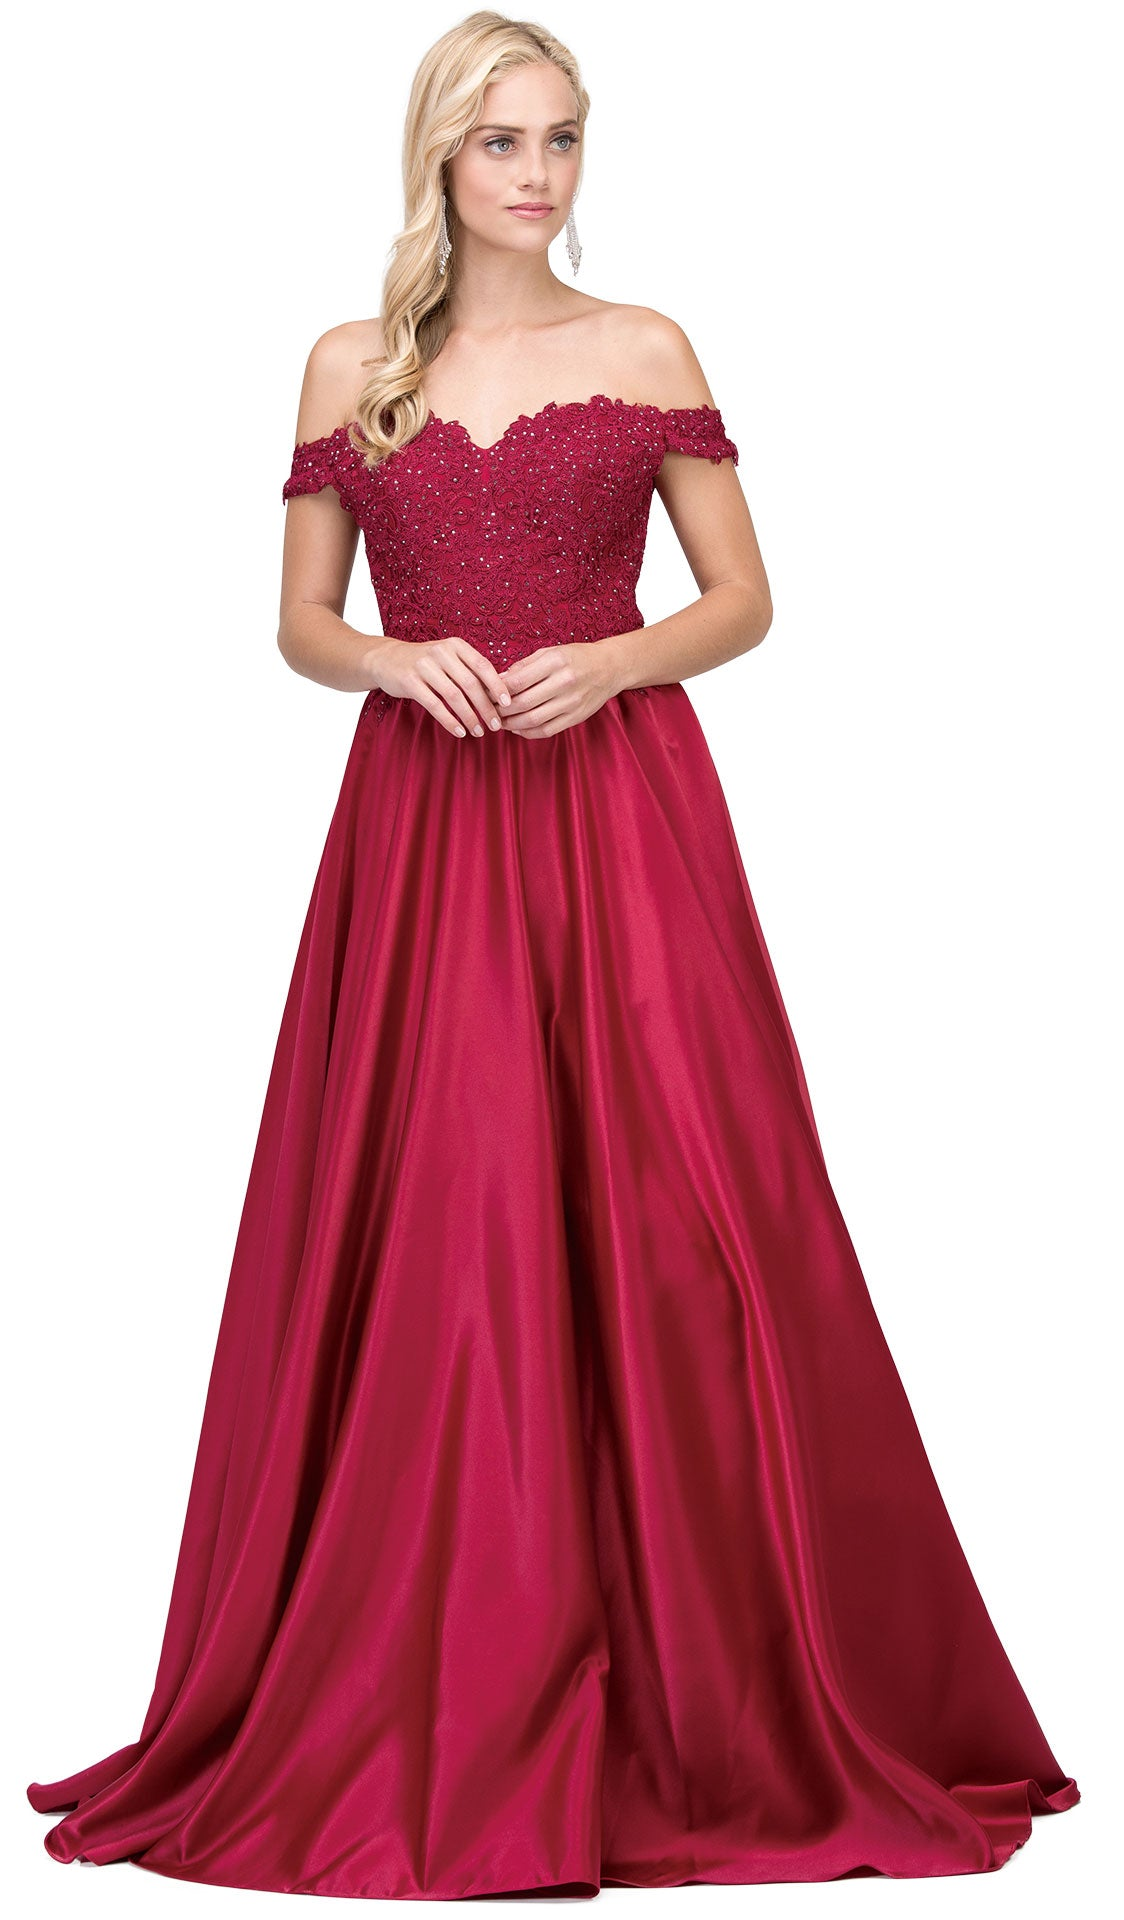 Image of Sweetheart Off-the-shoulder Lace Bust Long Prom Dress in Burgundy